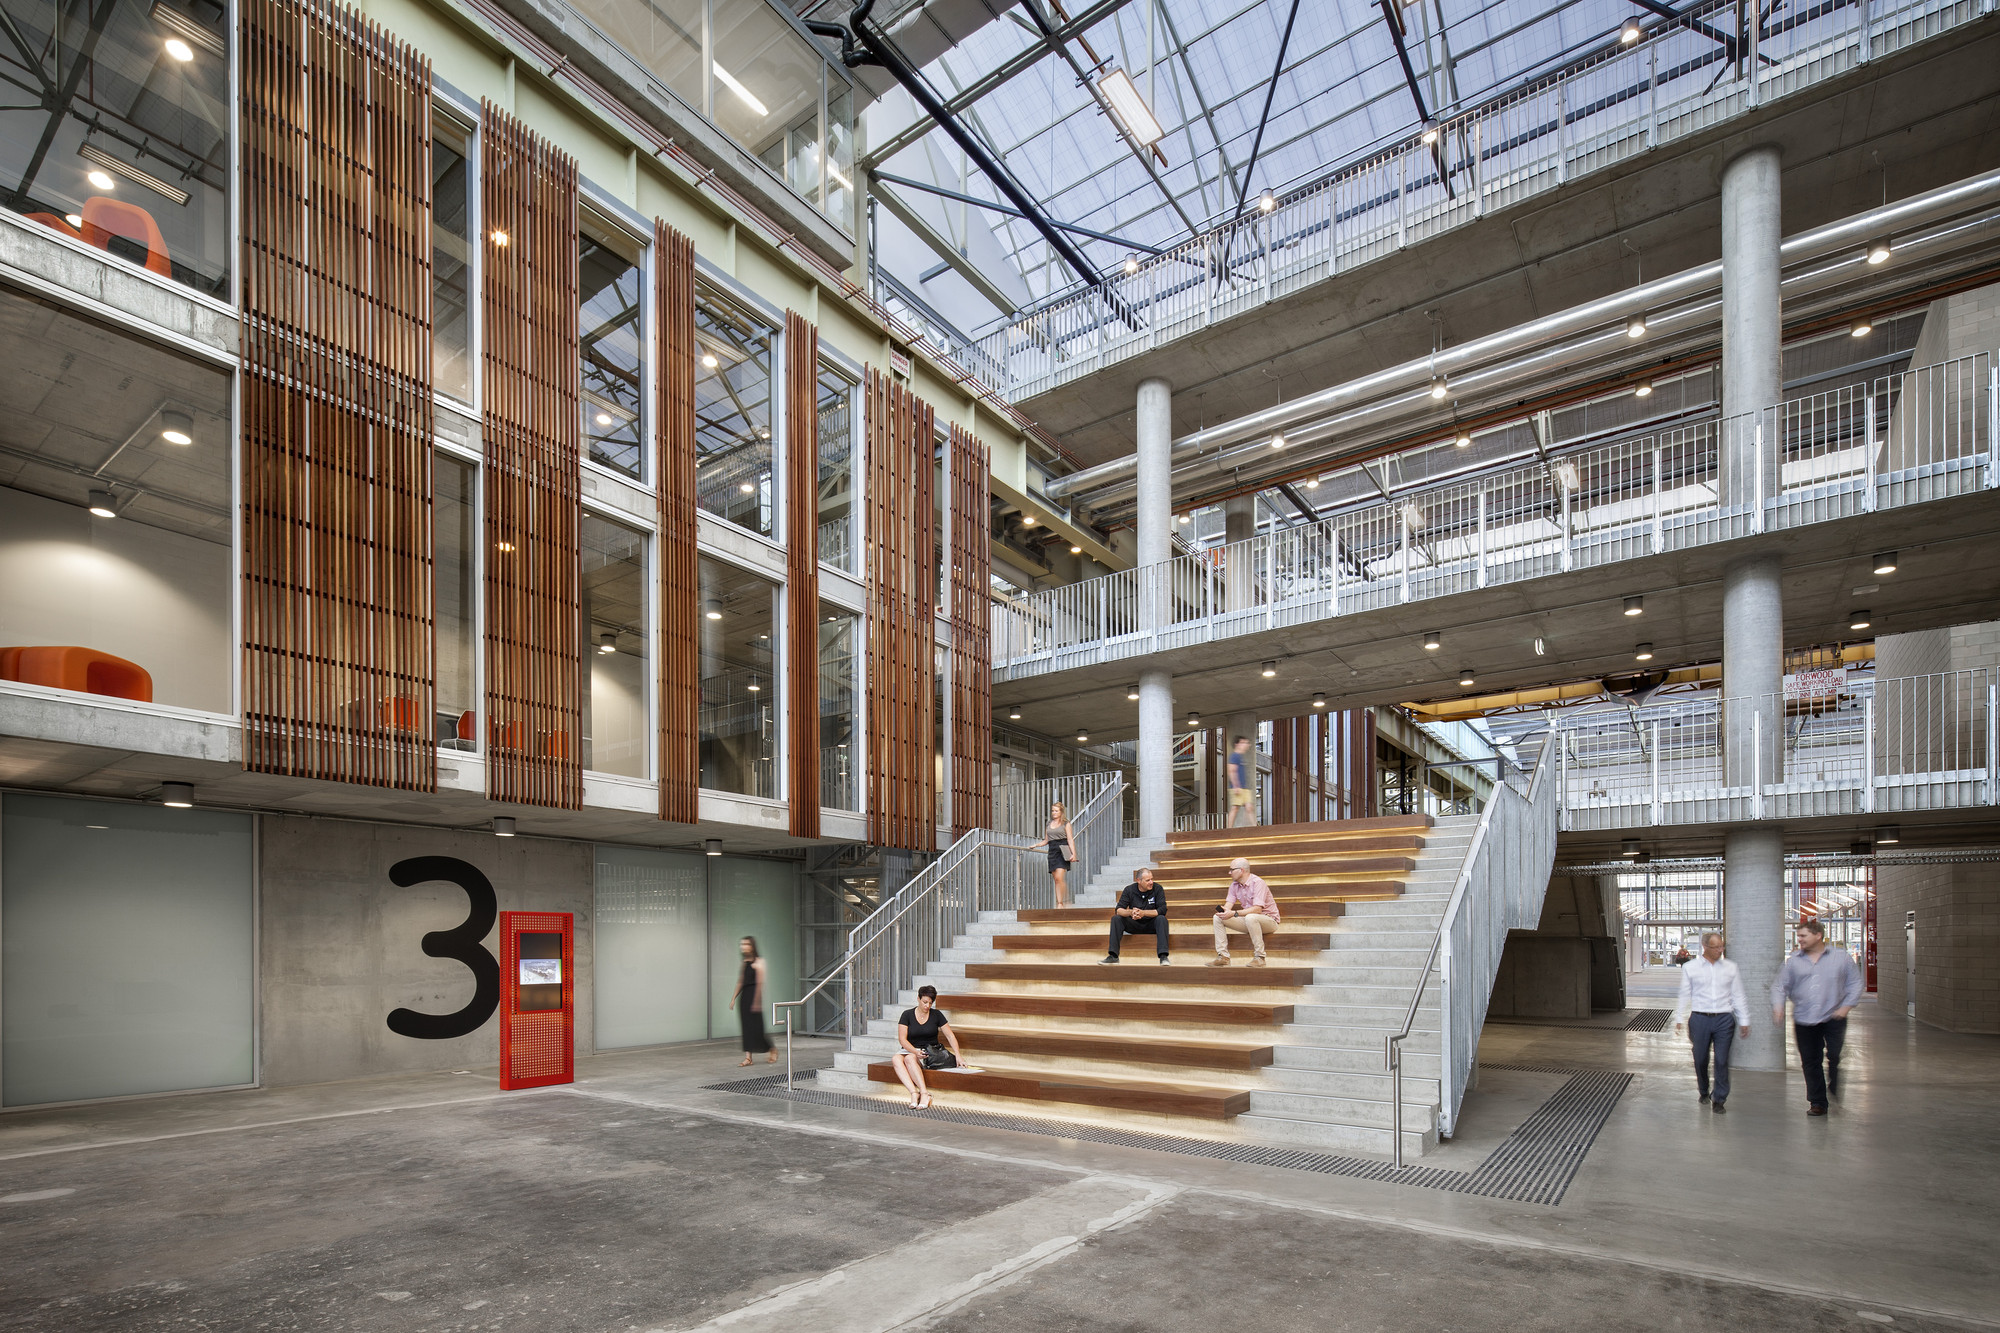 Australian Institute Of Architects Announces 2014 National